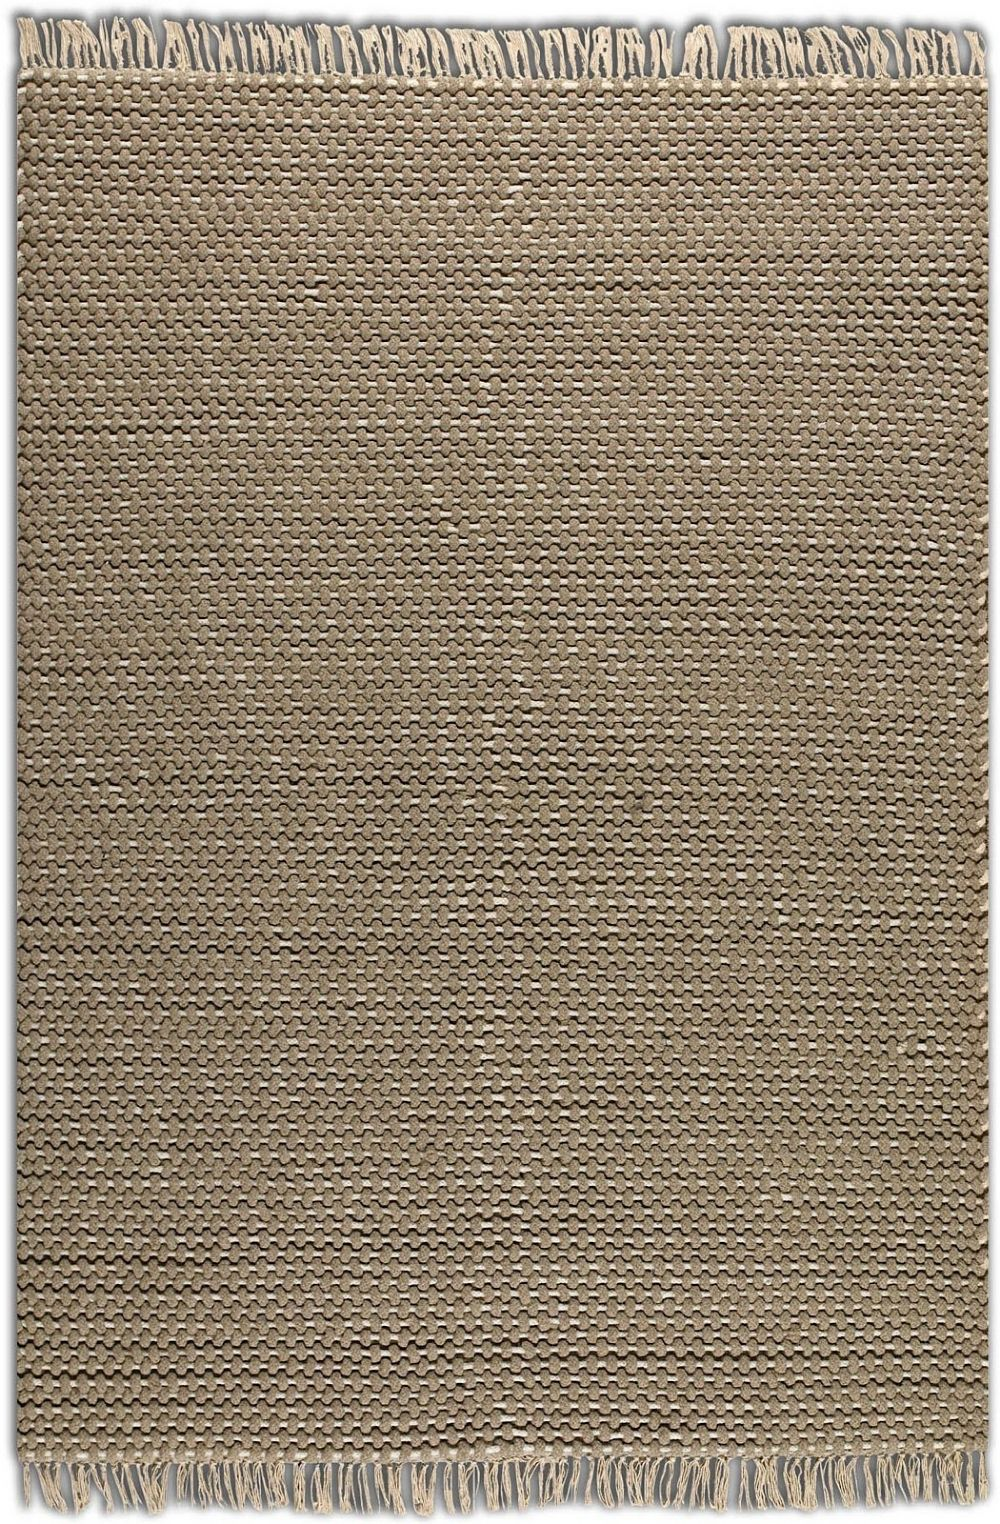 uttermost juntura contemporary area rug collection